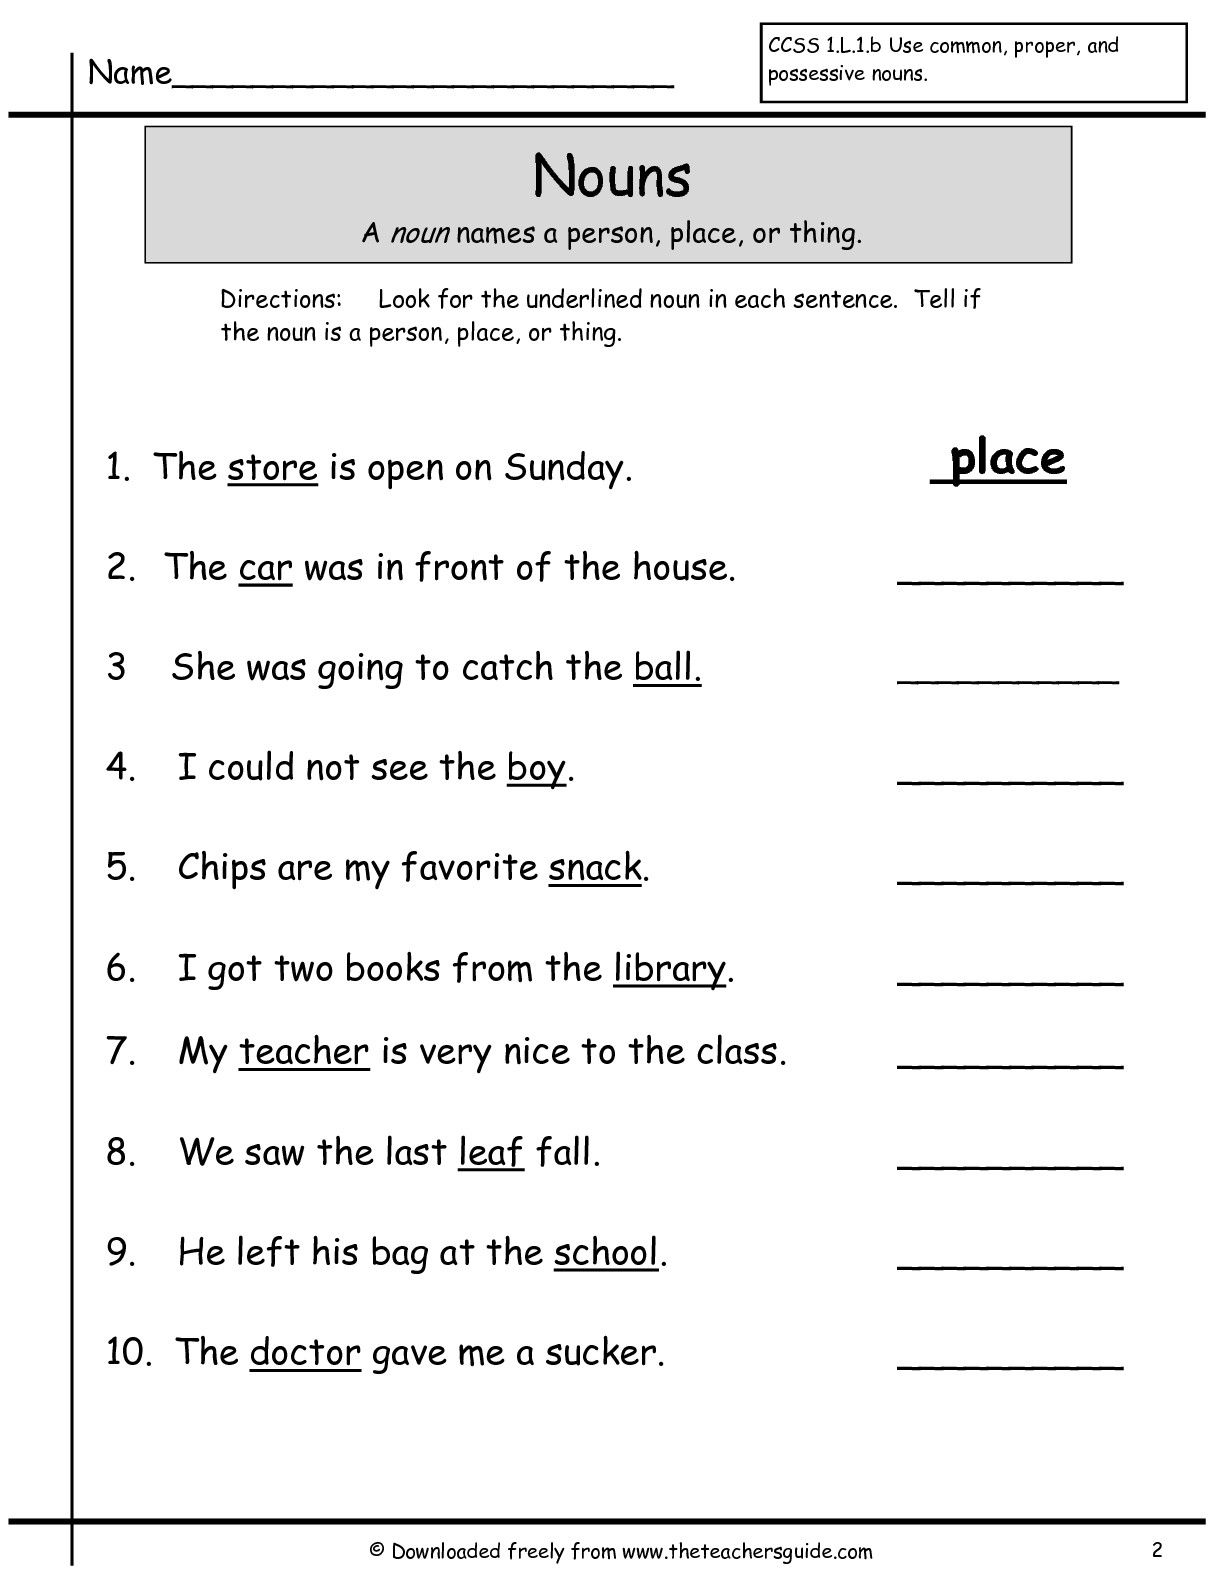 hight resolution of nouns grade 1 worksheets - Google Search   Nouns worksheet